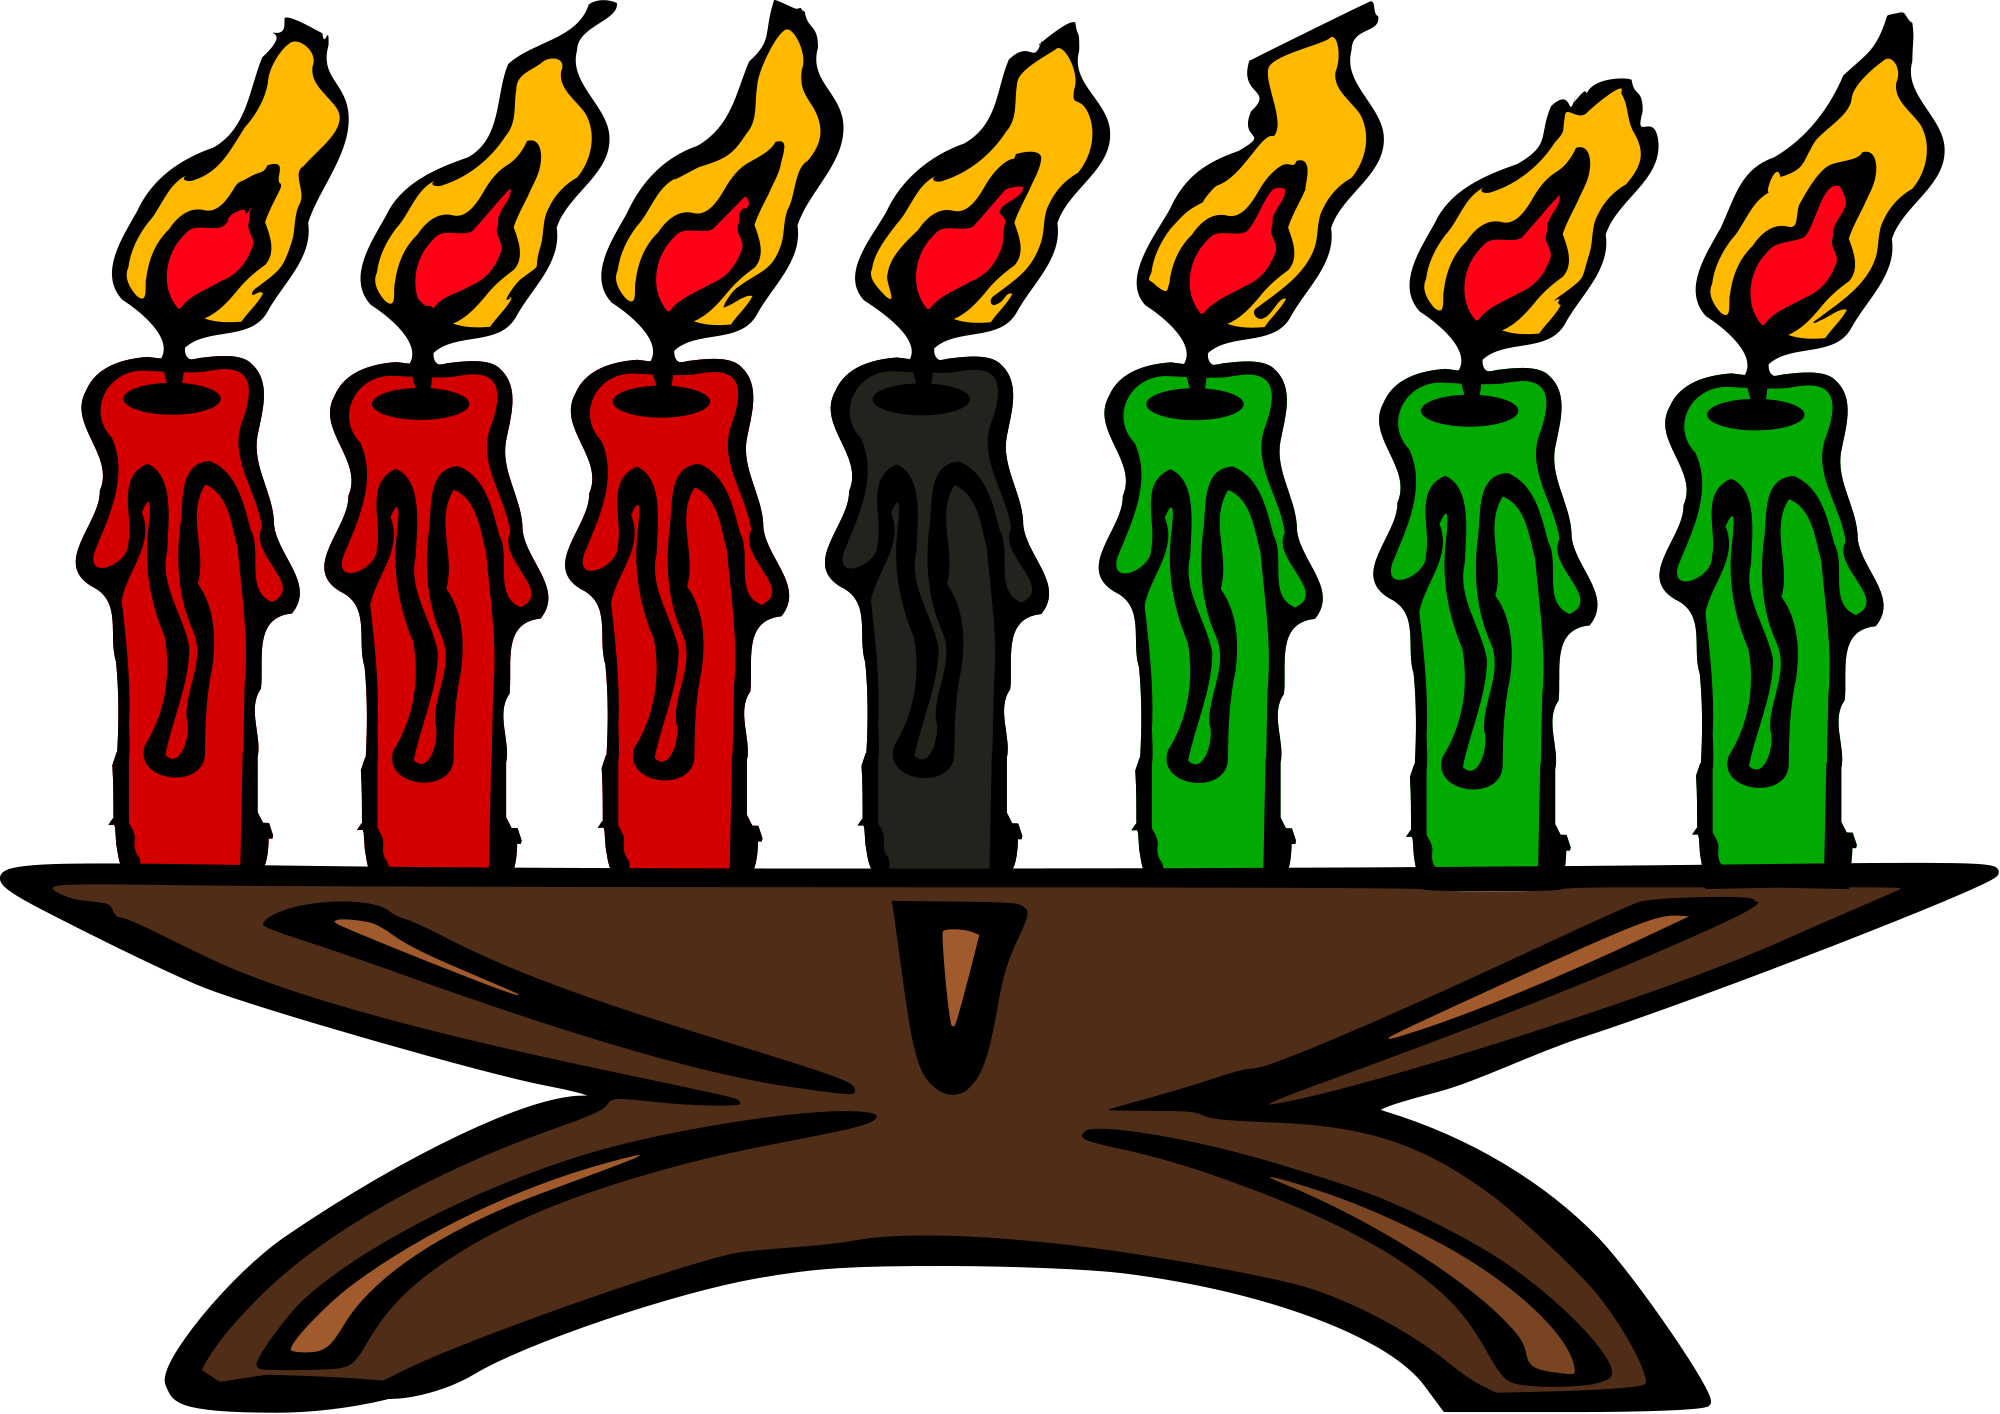 Kwanzaa celebration madison celebrate. 7 clipart object